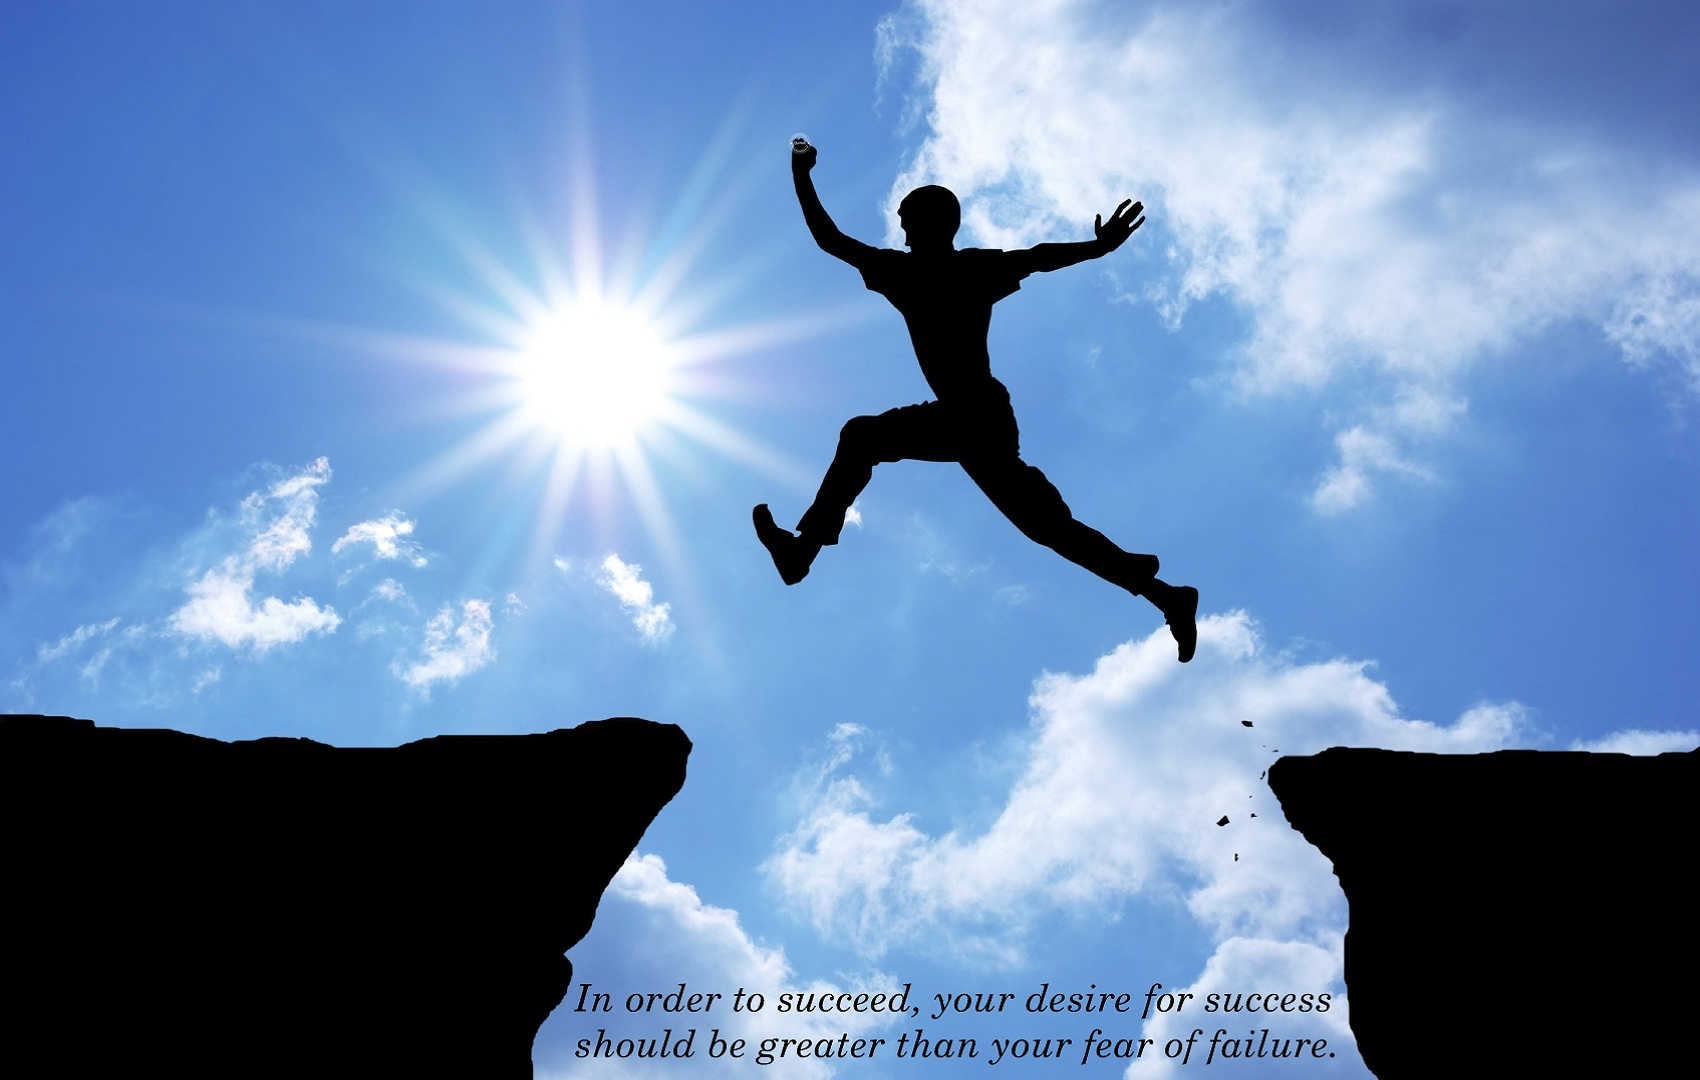 Amazing life time achievement- Proof of belief, commitment and results in the physical world